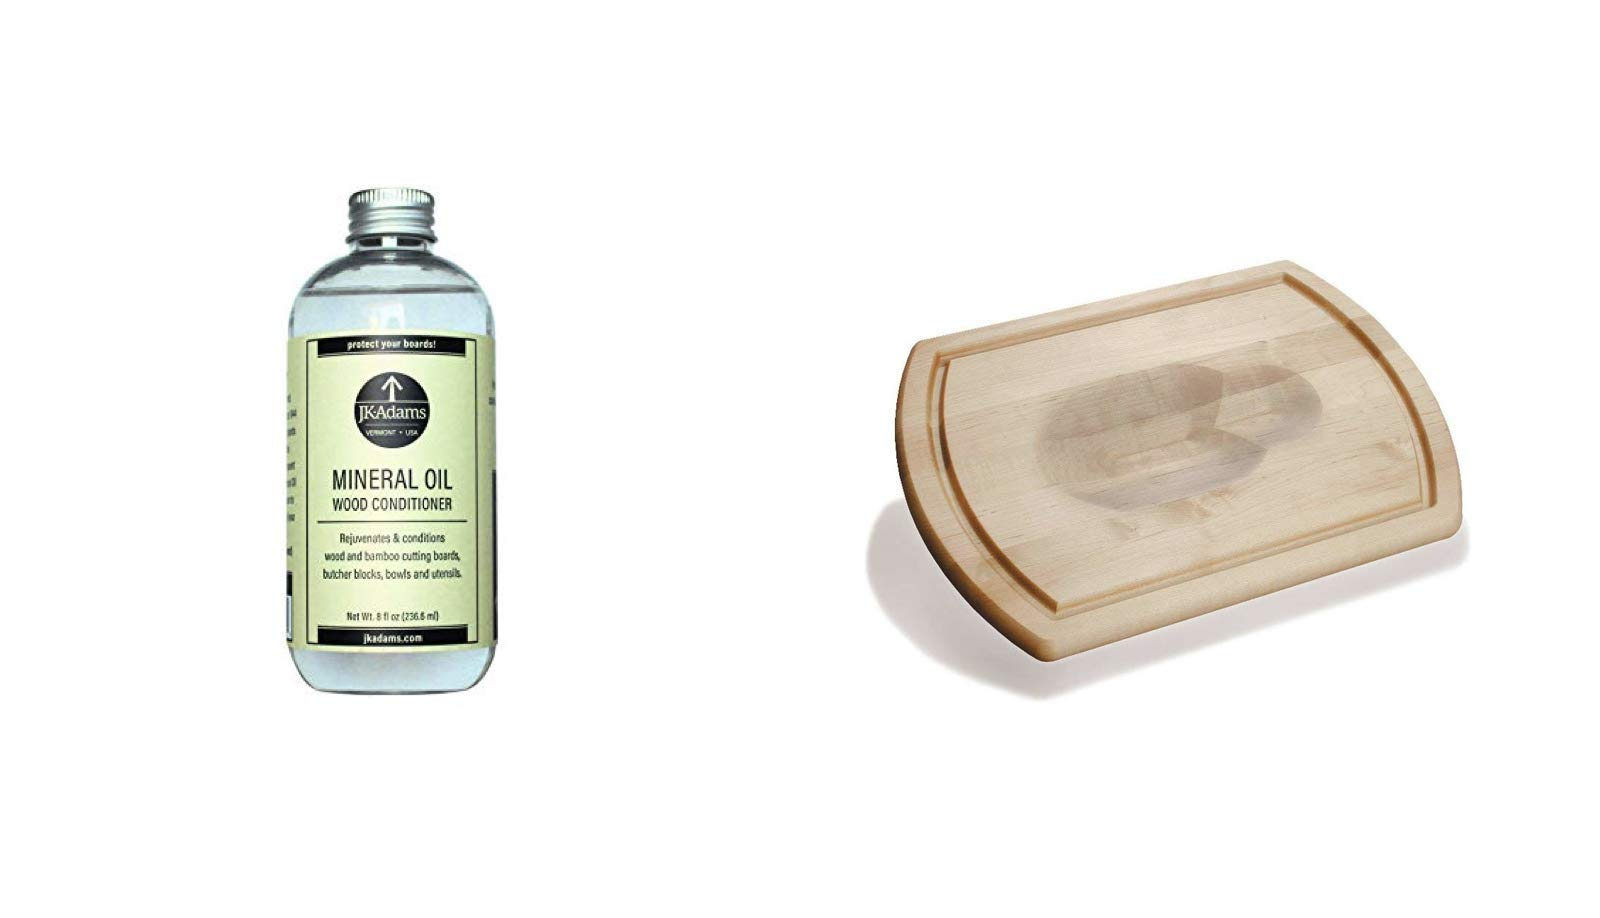 J.K. Adams Large Reversible Maple Carving Board and 8-Ounce Mineral Oil Wood Conditioner Bundle